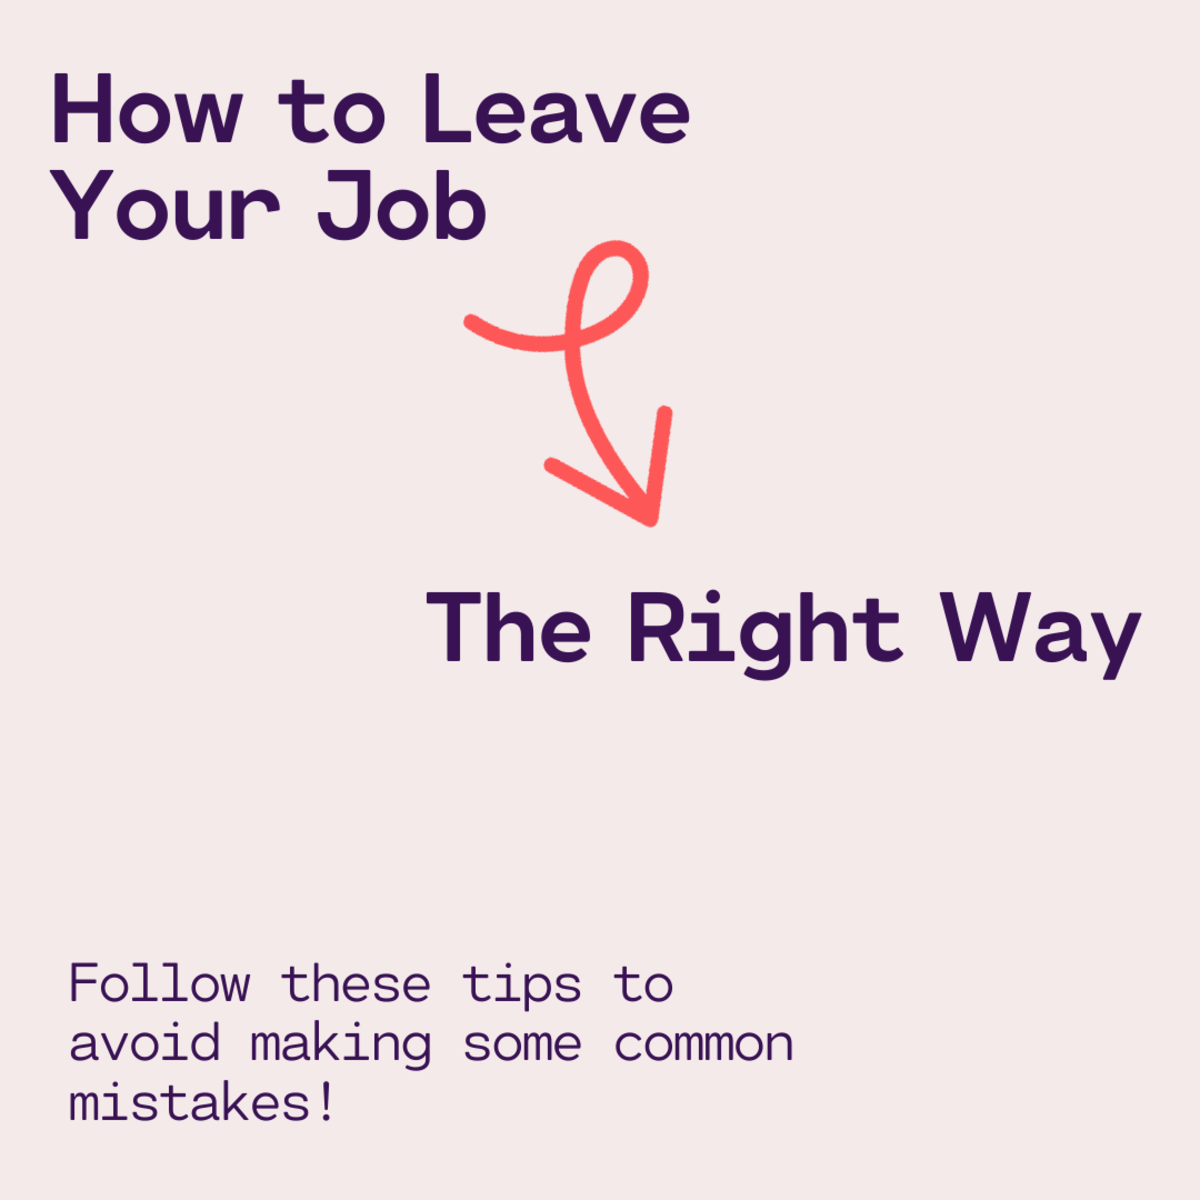 12 Tips to Quit Your Job the Right Way